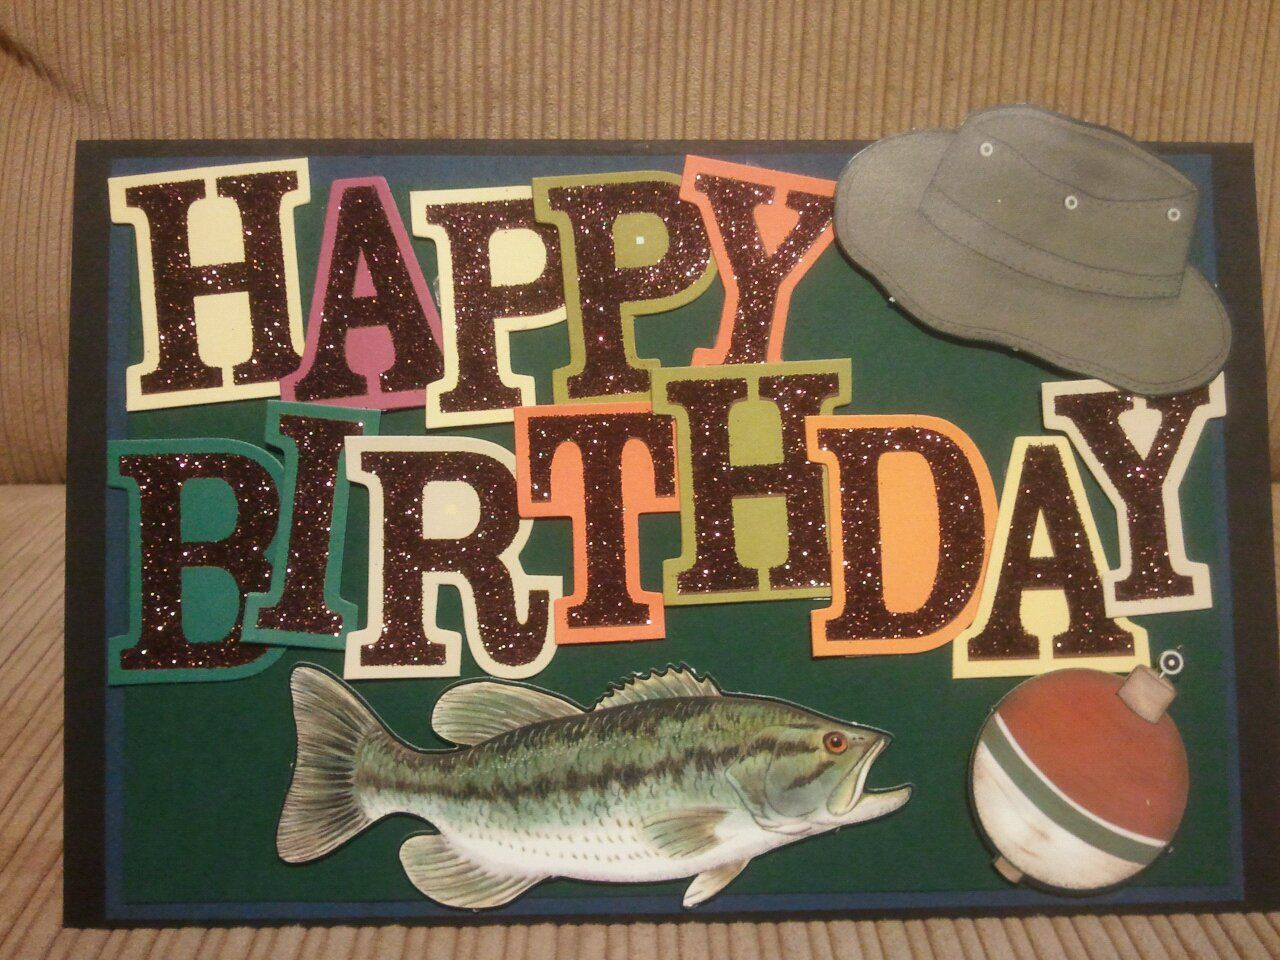 happy birthday fisherman card ; 61a2d29508dff78a69b09b0eba6c05b1